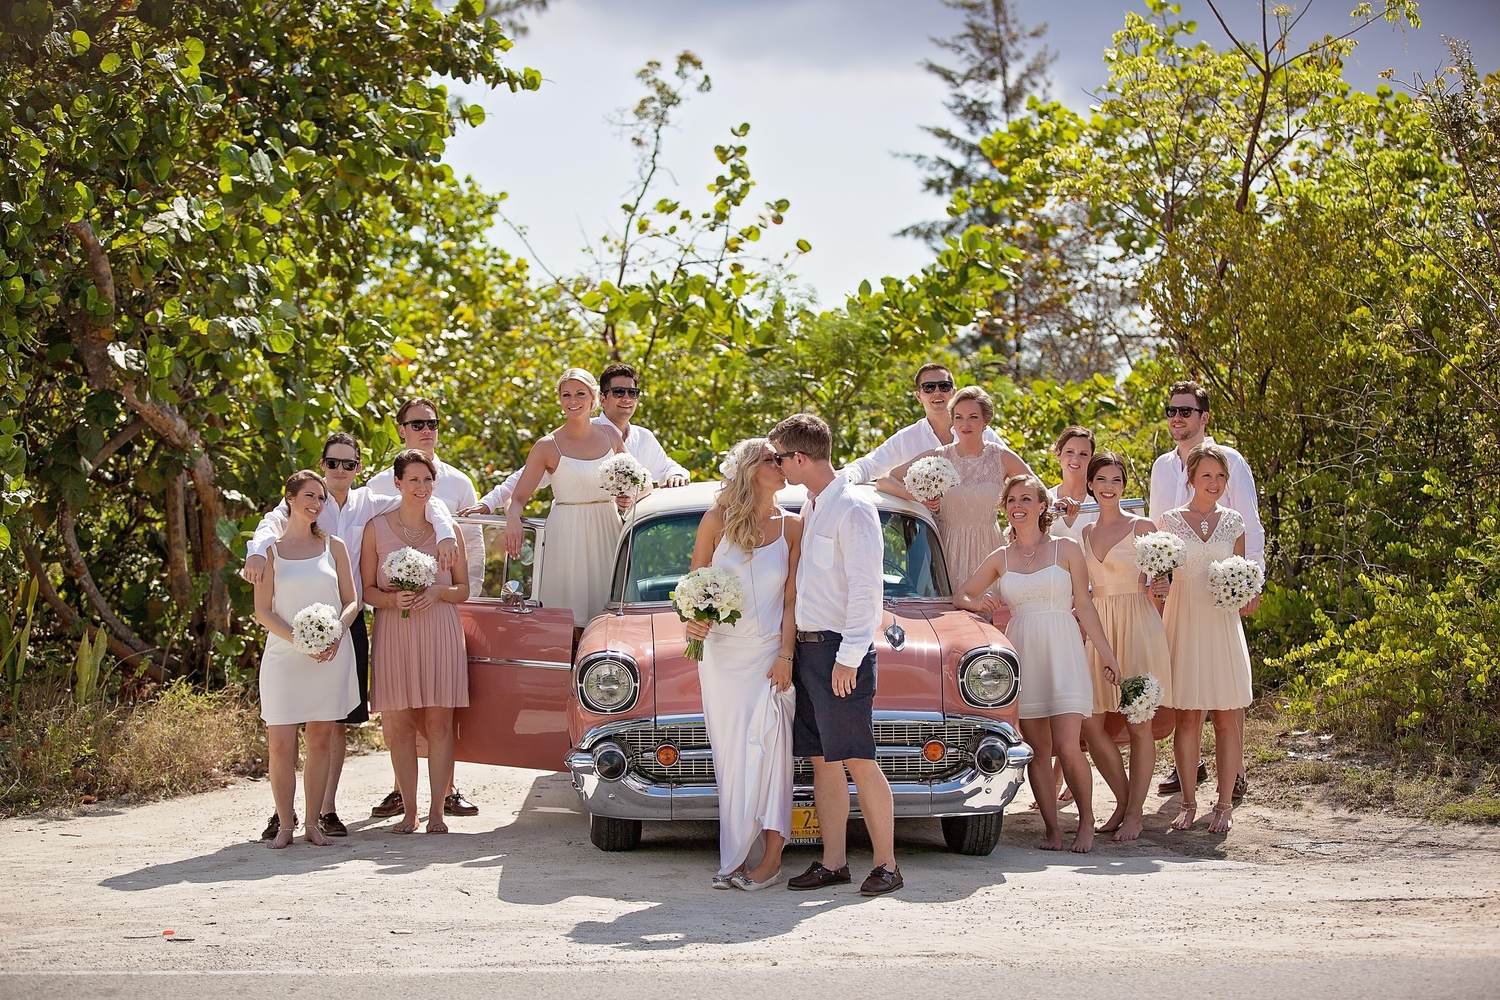 Wedding party sitting in front of pink classic car